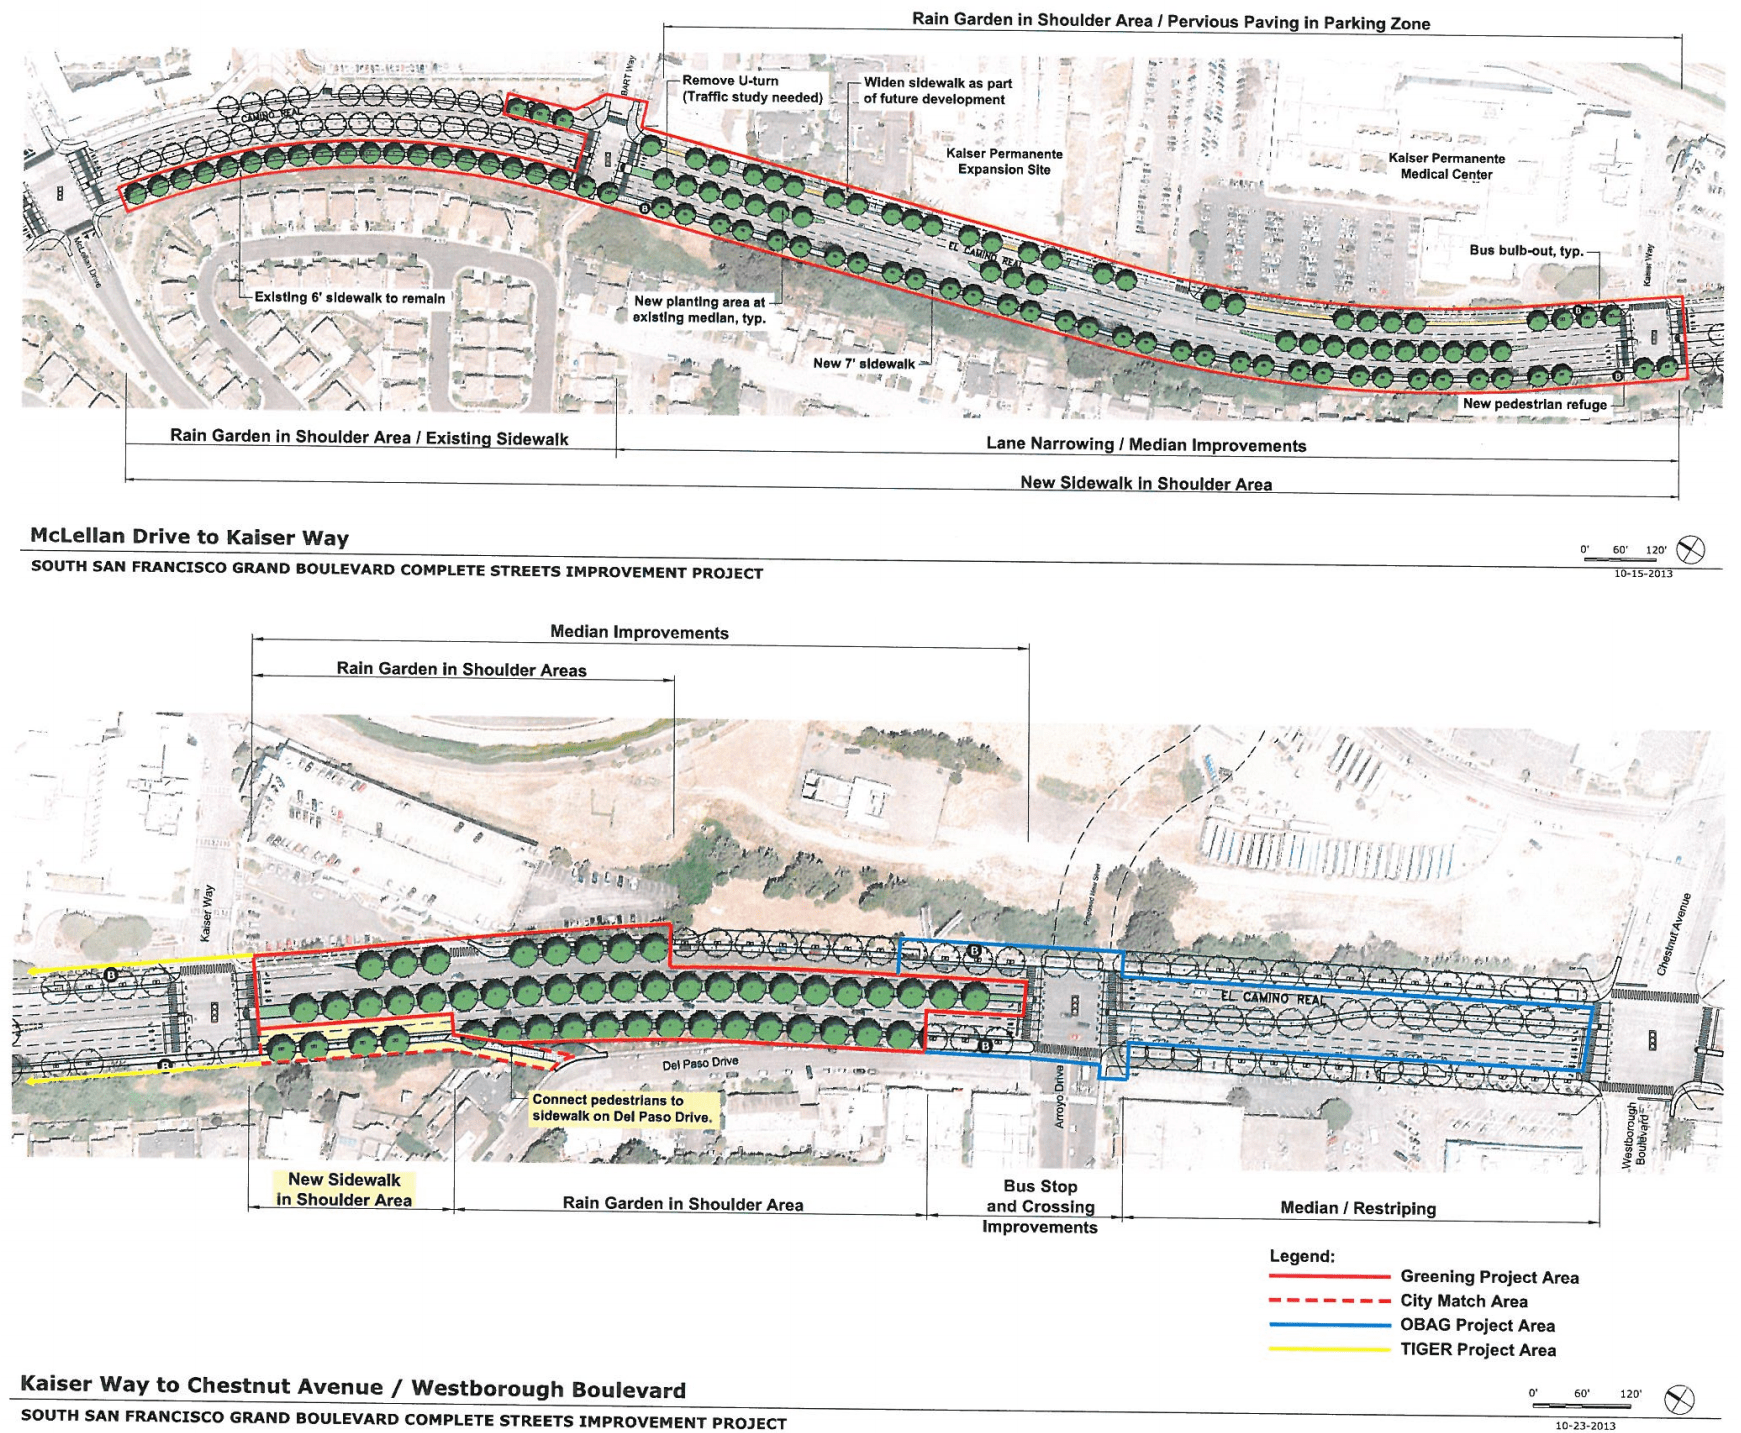 South San Francisco hopes to reconstruct a X-mile segment of El Camino Real with pedestrian safety improvements including wider sidewalks, curb extensions, and pedestrian refuges in widened medians by early 2018. Image: City of South San Francisco.